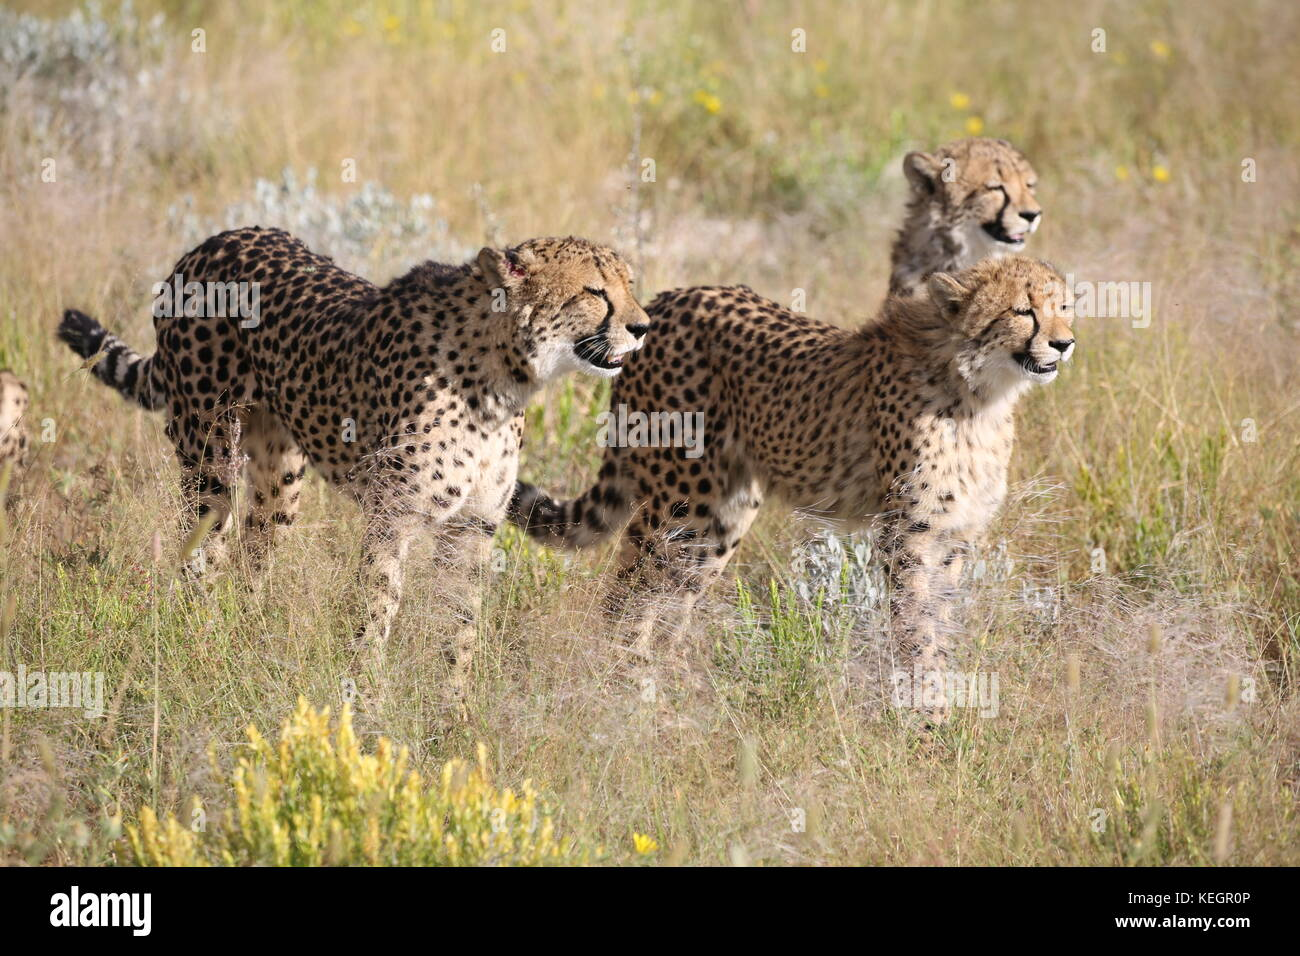 Geparde Cheetahs In Namibia In Steppenlandschaft Auf Einer Safari